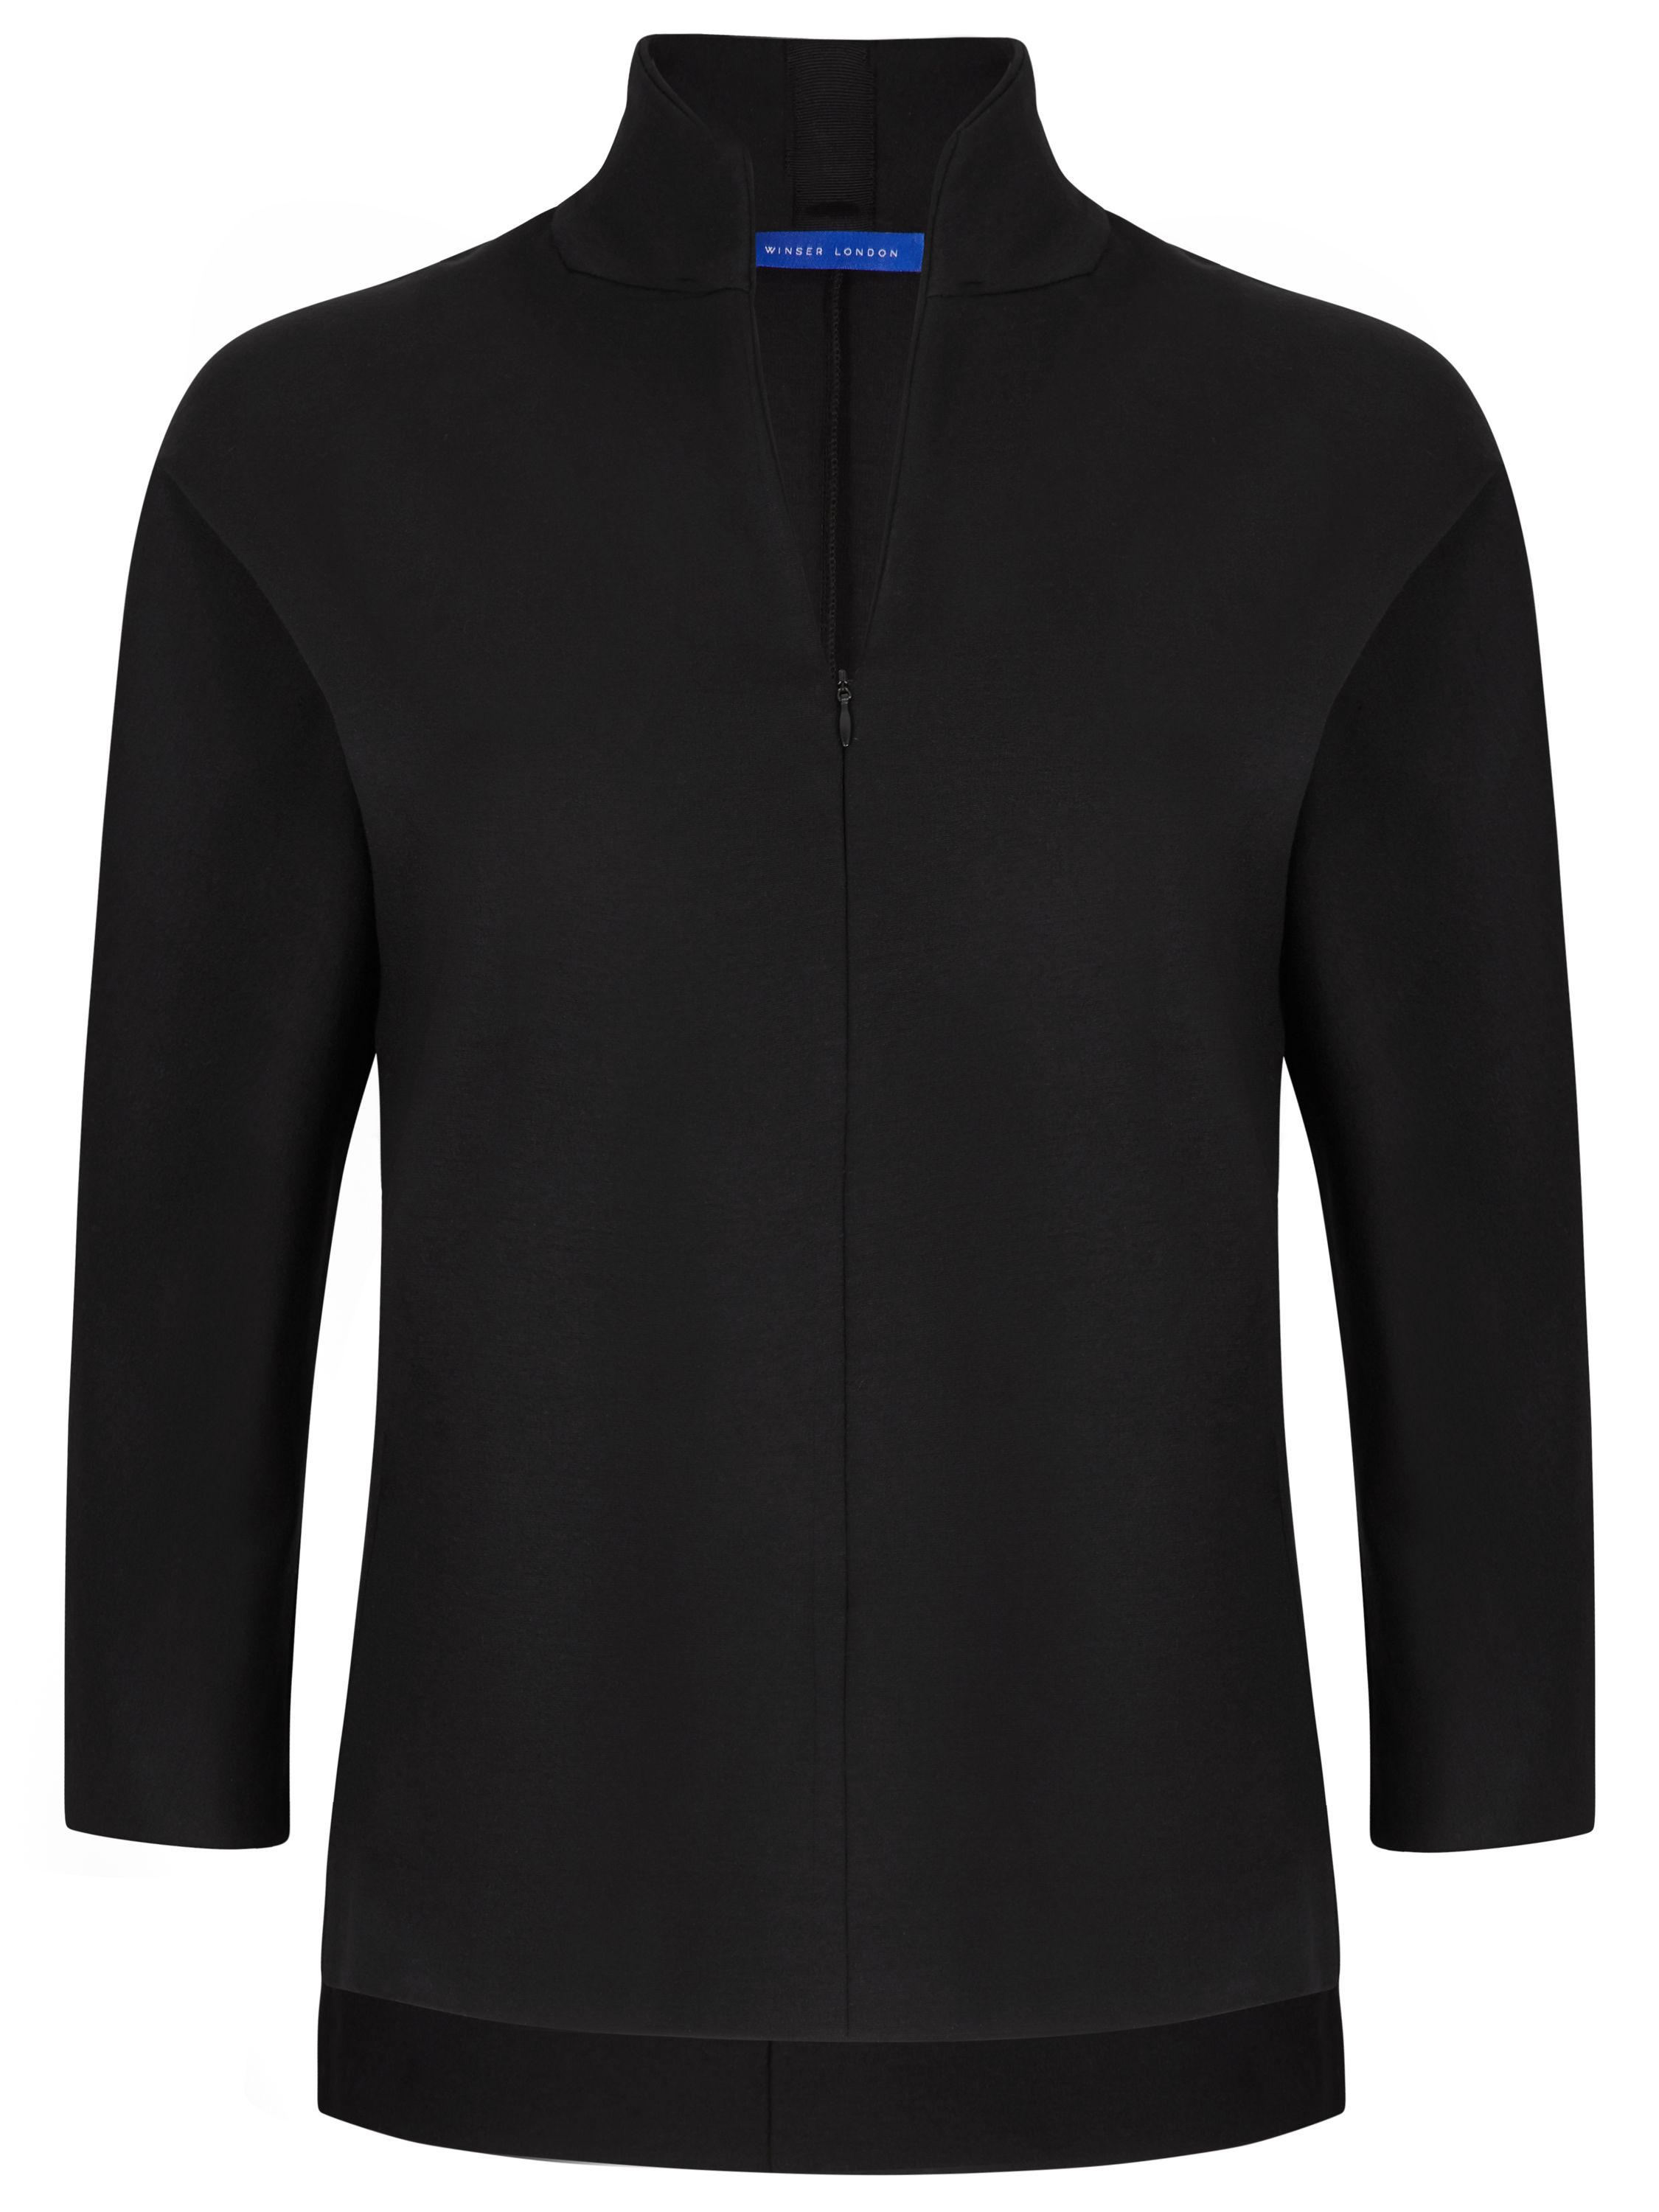 Winser London Emma Miracle Zip Top, Black